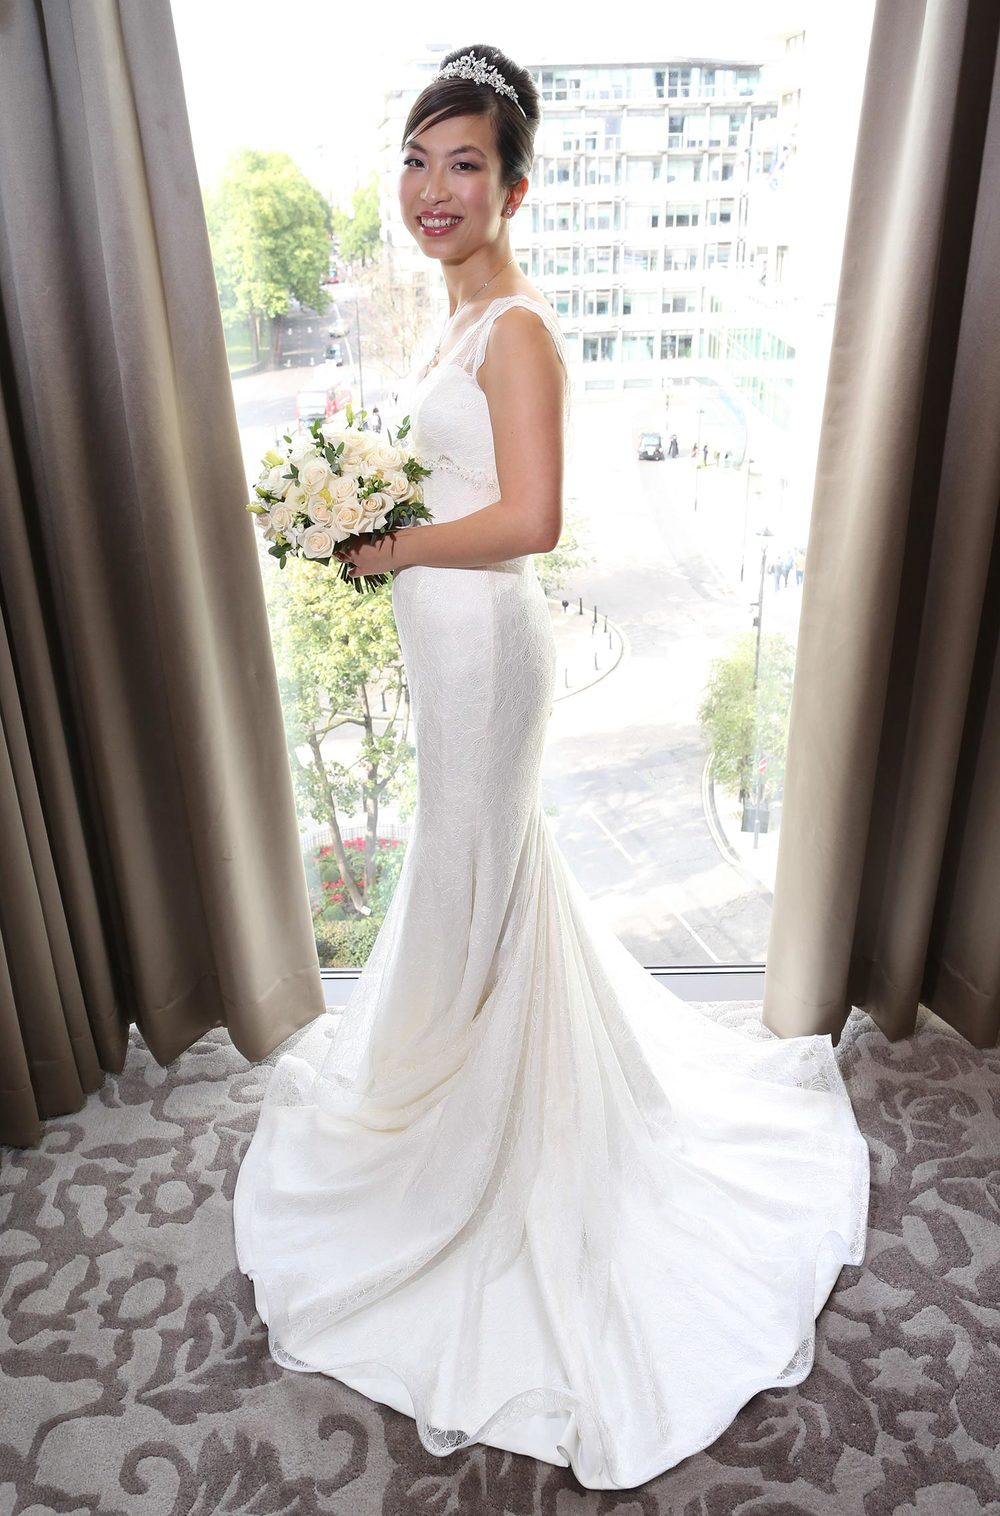 Four Seasons Hotel, Park Lane Wedding